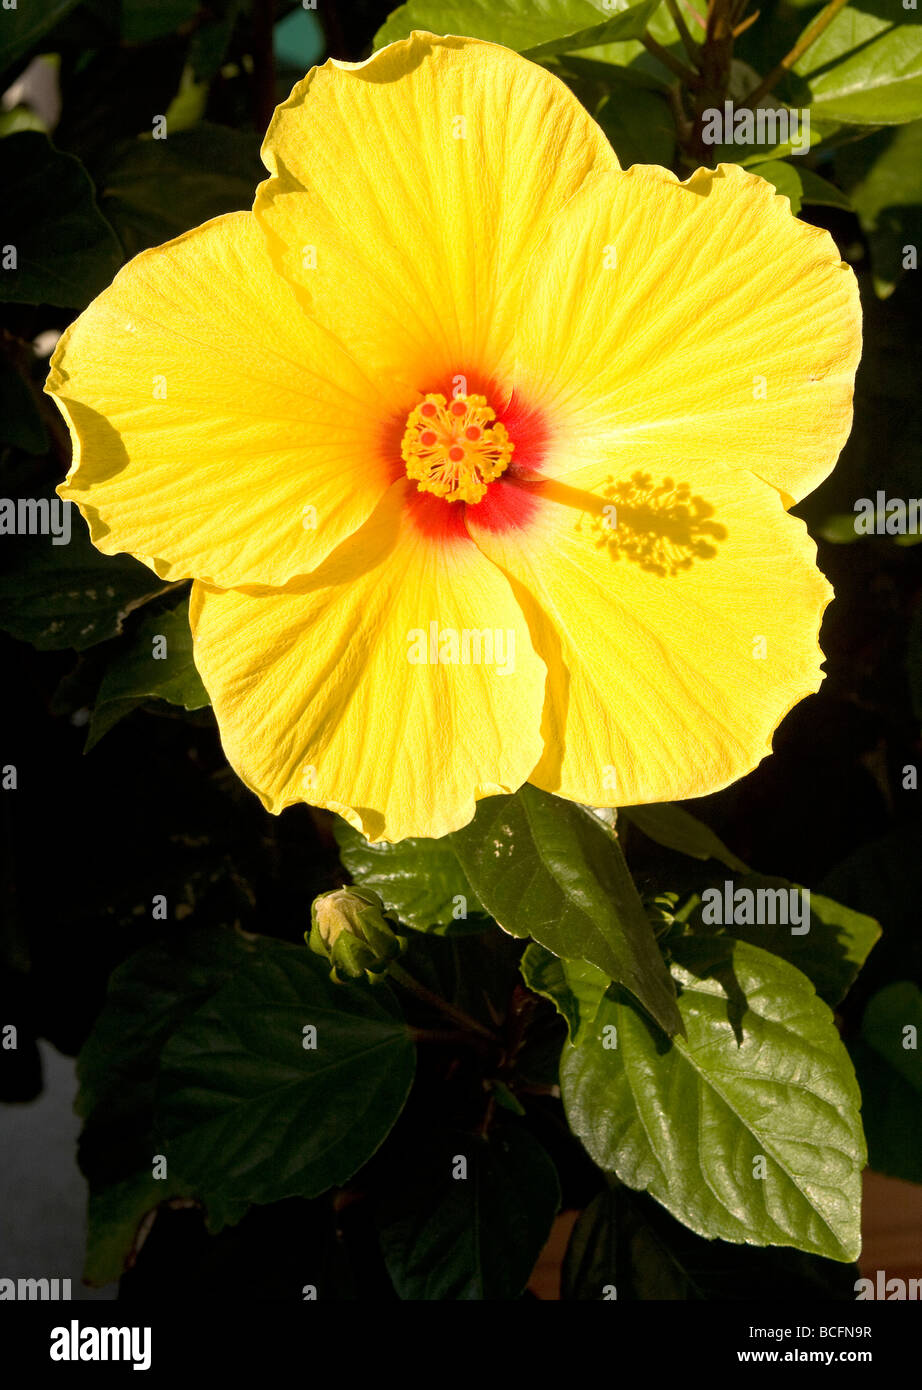 Yellow hibiscus flower with red center stock photo 24932259 alamy yellow hibiscus flower with red center mightylinksfo